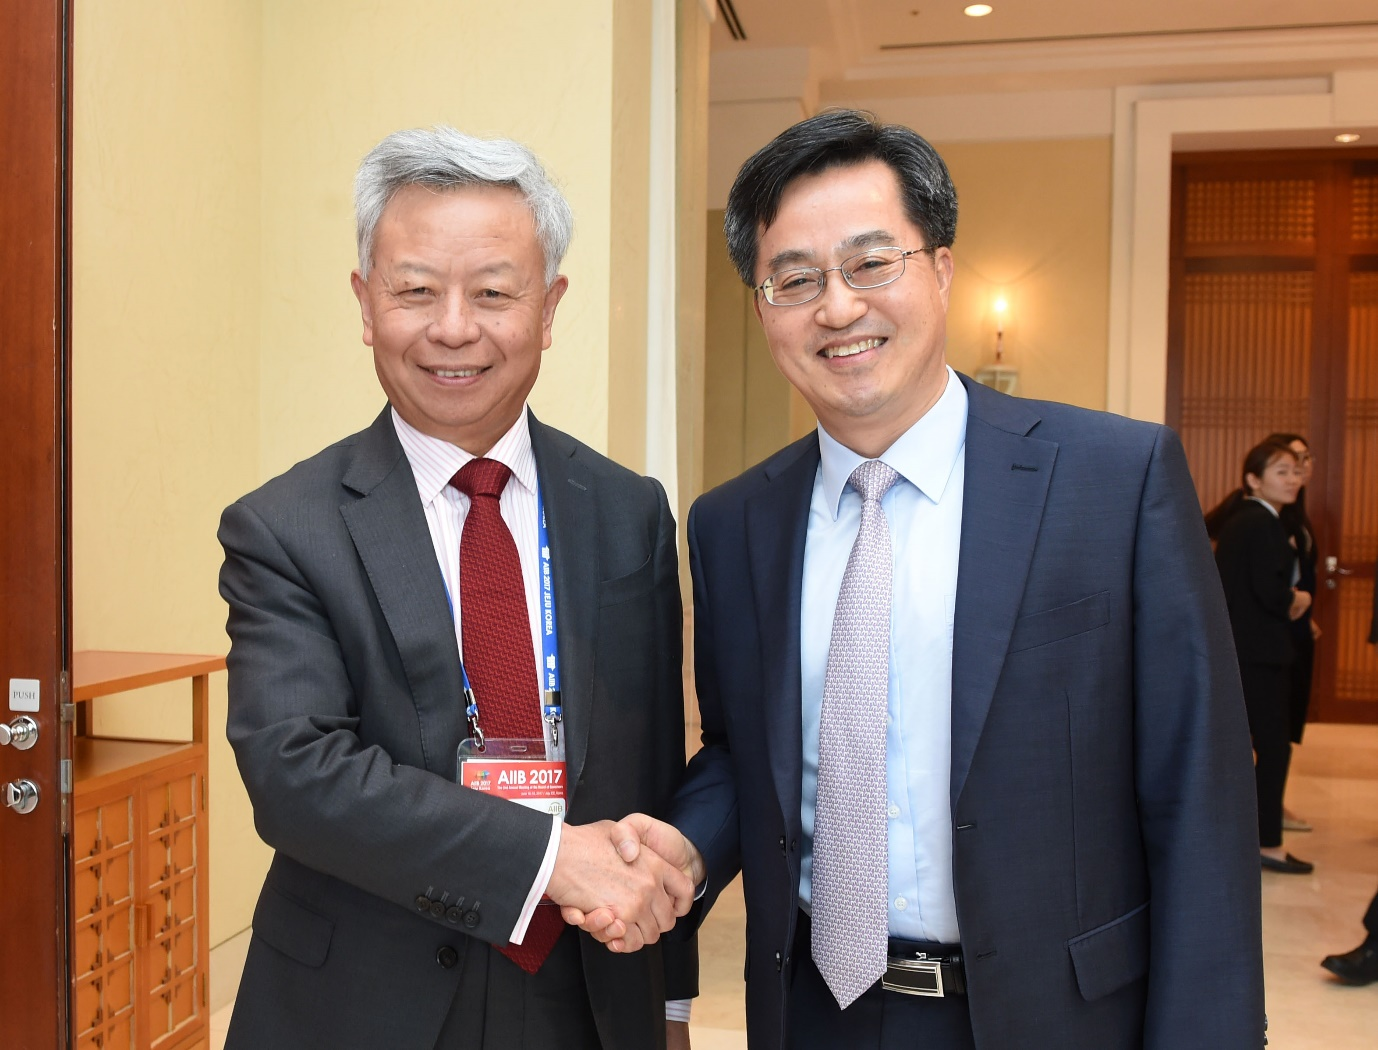 South Korean Deputy Prime Minister Kim Dong-yeon (right in the picture above) met with Asian Infrastructure Investment Bank (AIIB) President Jin Liqun on June 15.